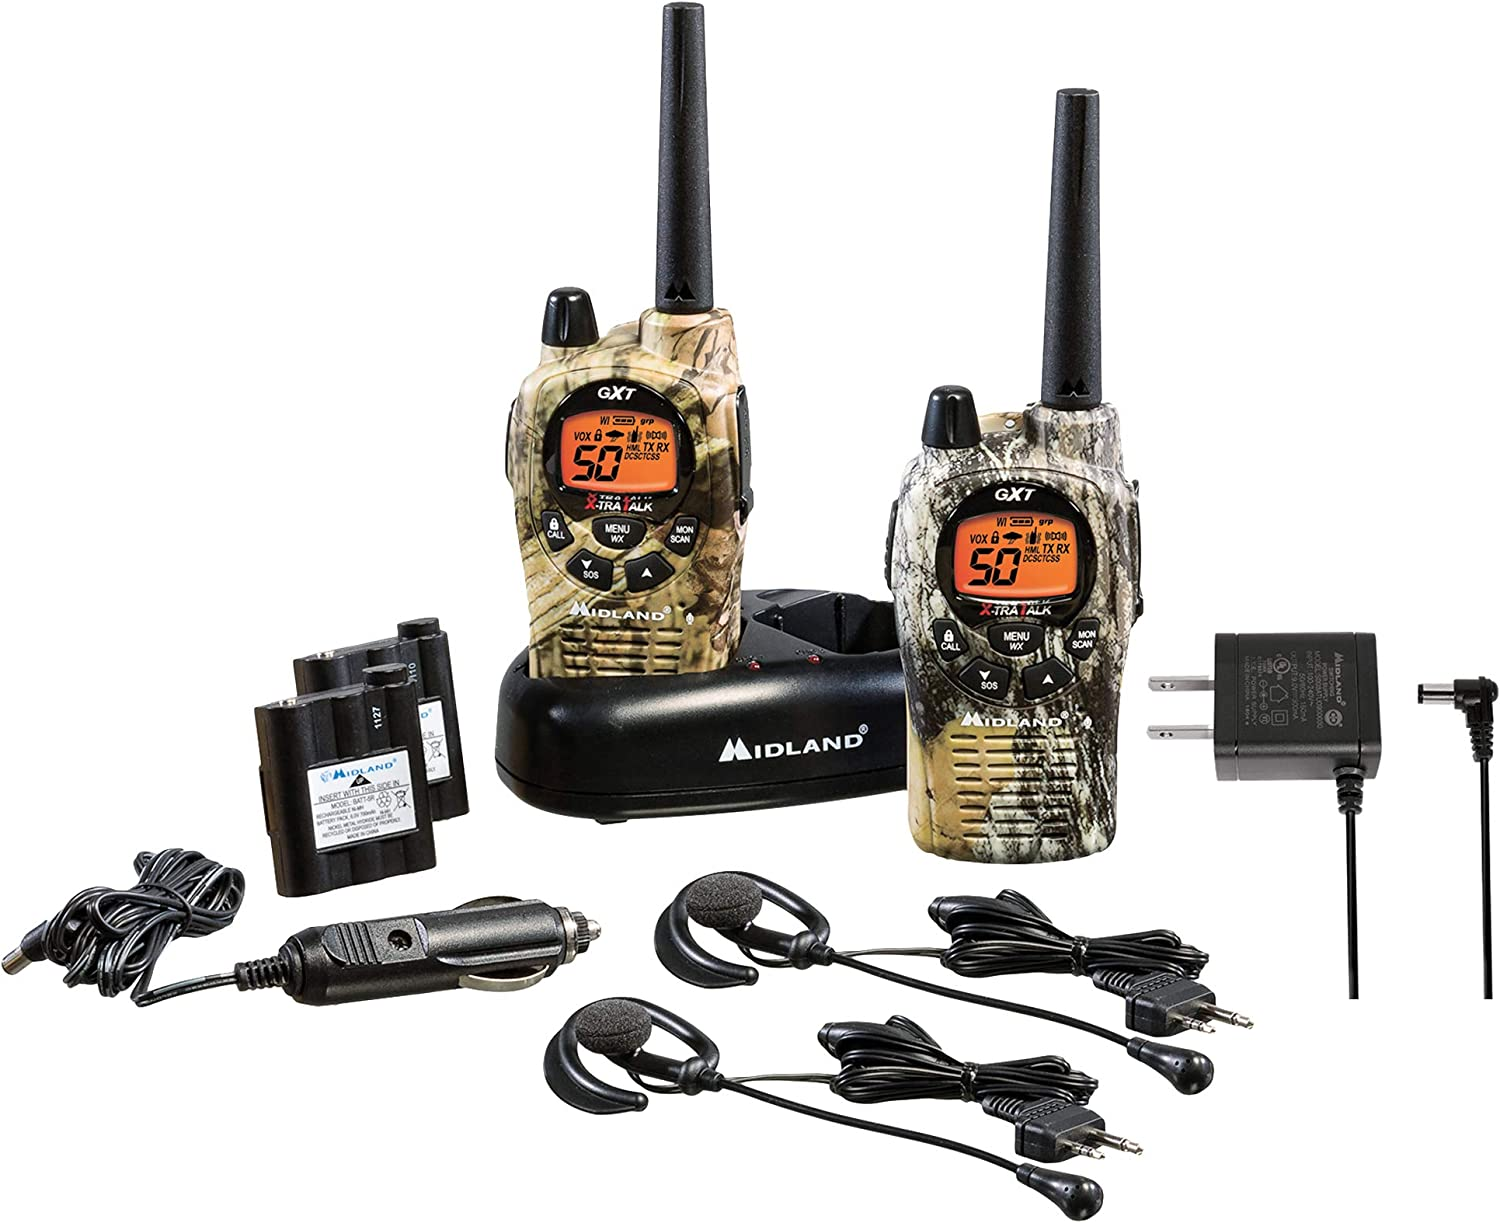 Midland 50 Channel GMRS Two-Way Radio